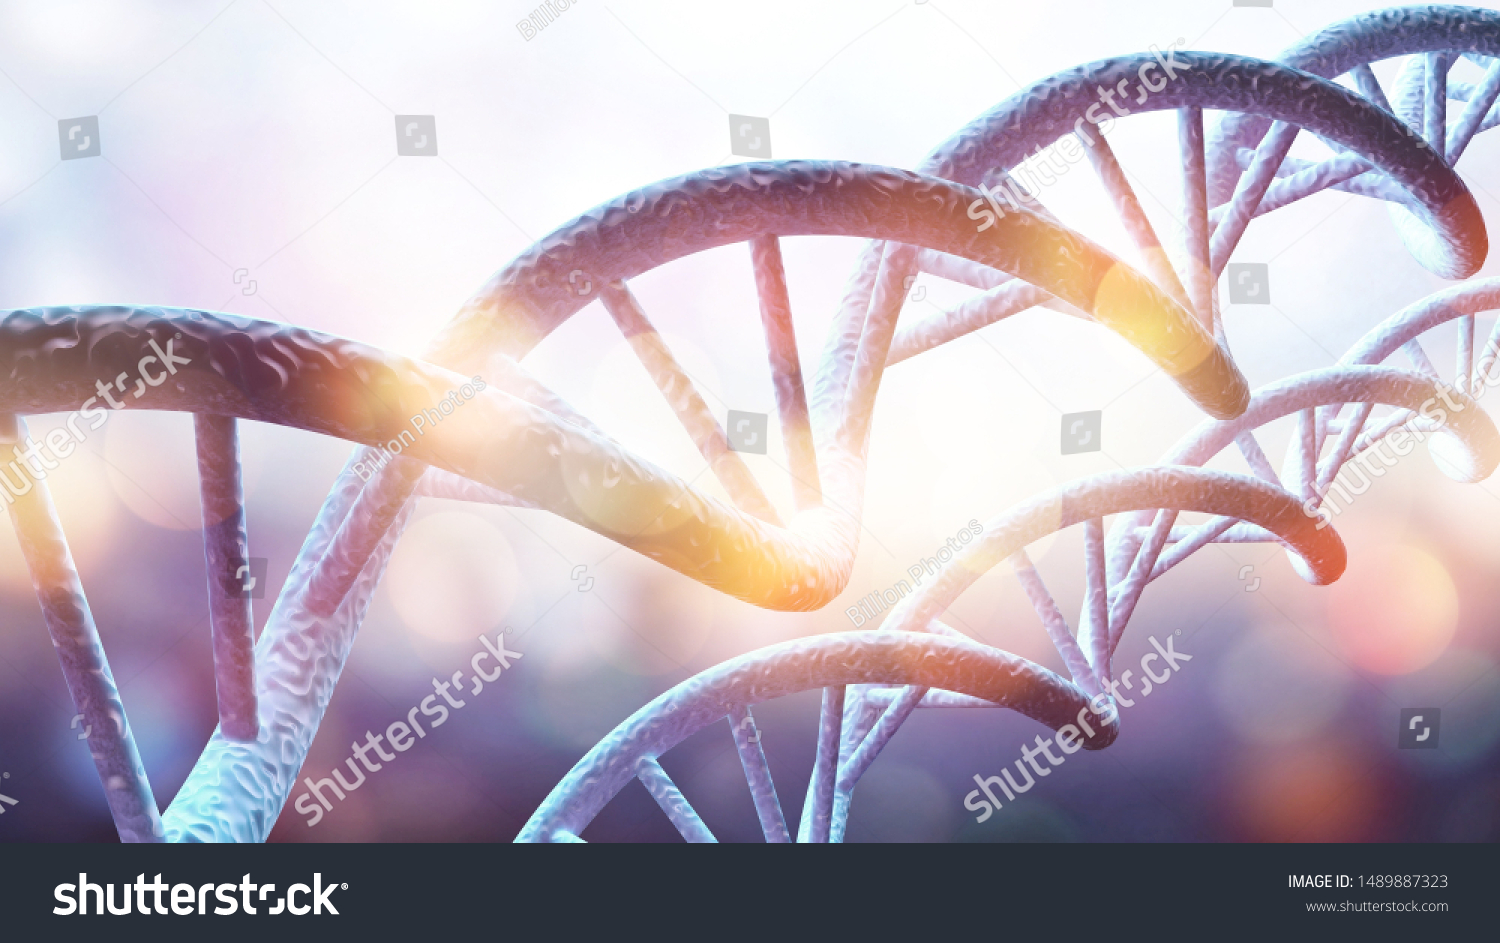 Science Biotechnology DNA illustration and abstract illustration #1489887323